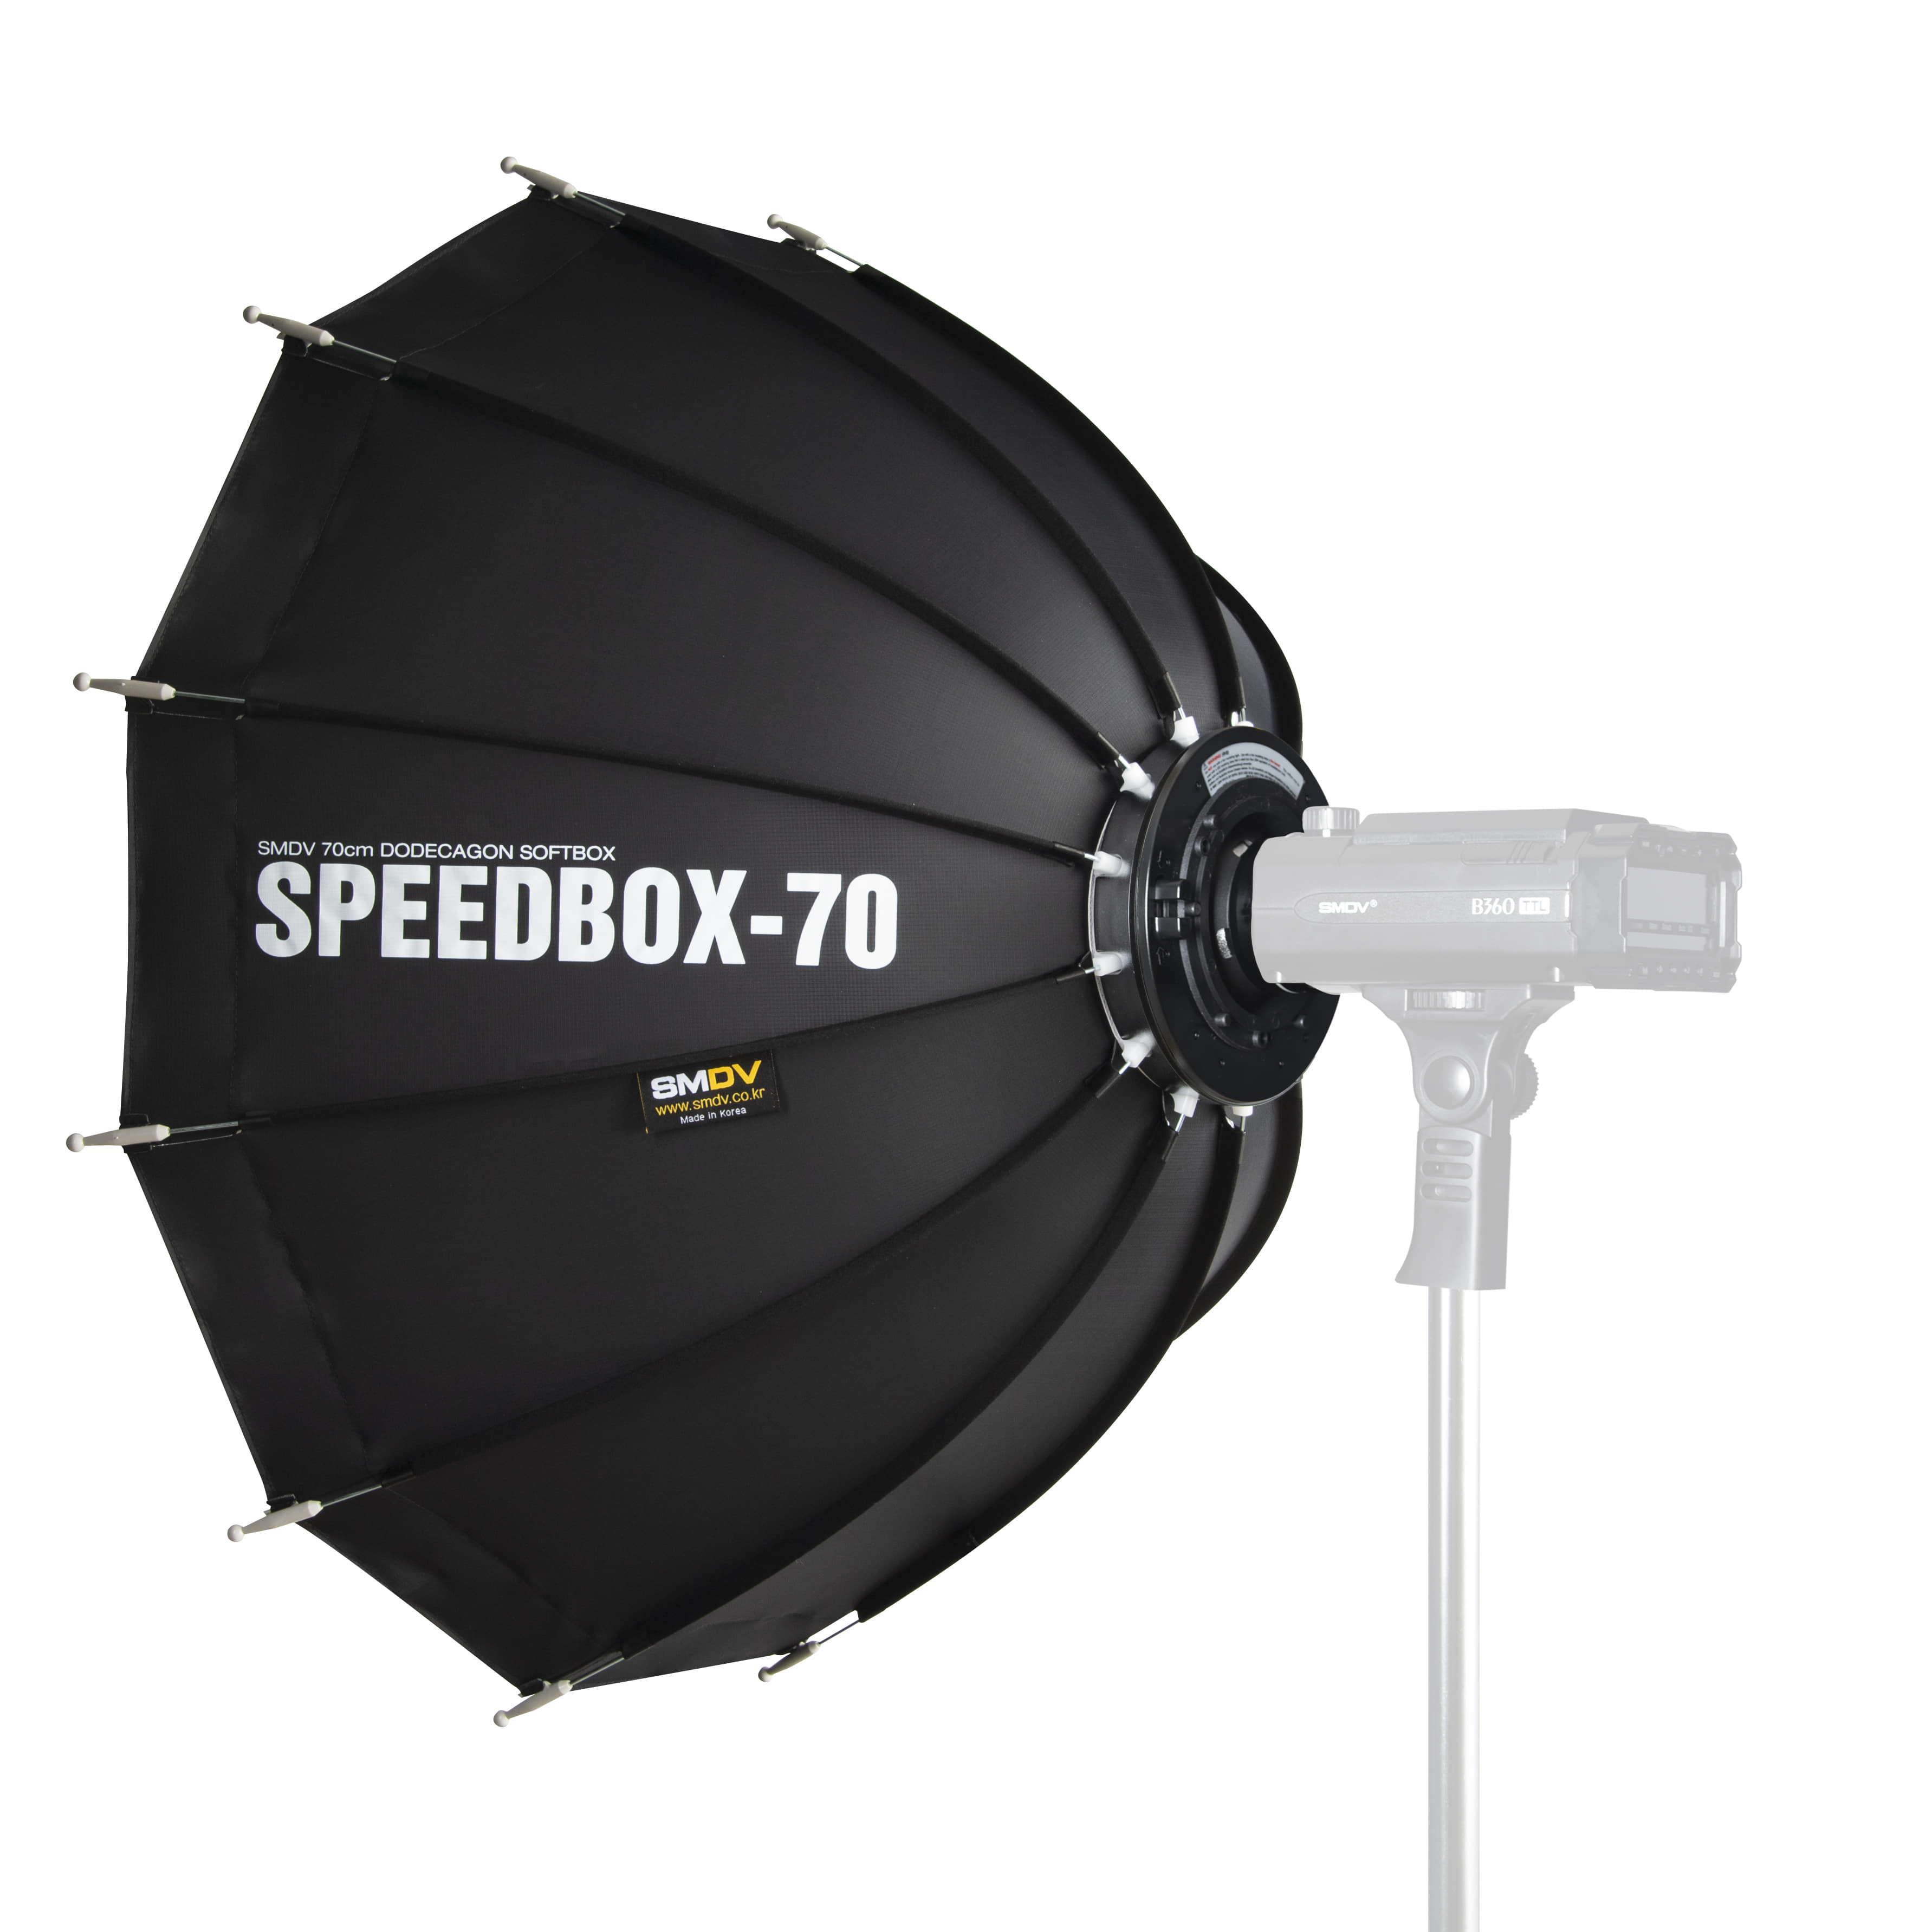 SPEEDBOX-70 / Size : 70 x 68 cm SPEEDLITE SOFTBOX / B360 TypeNot for High Heat UsageSMDV